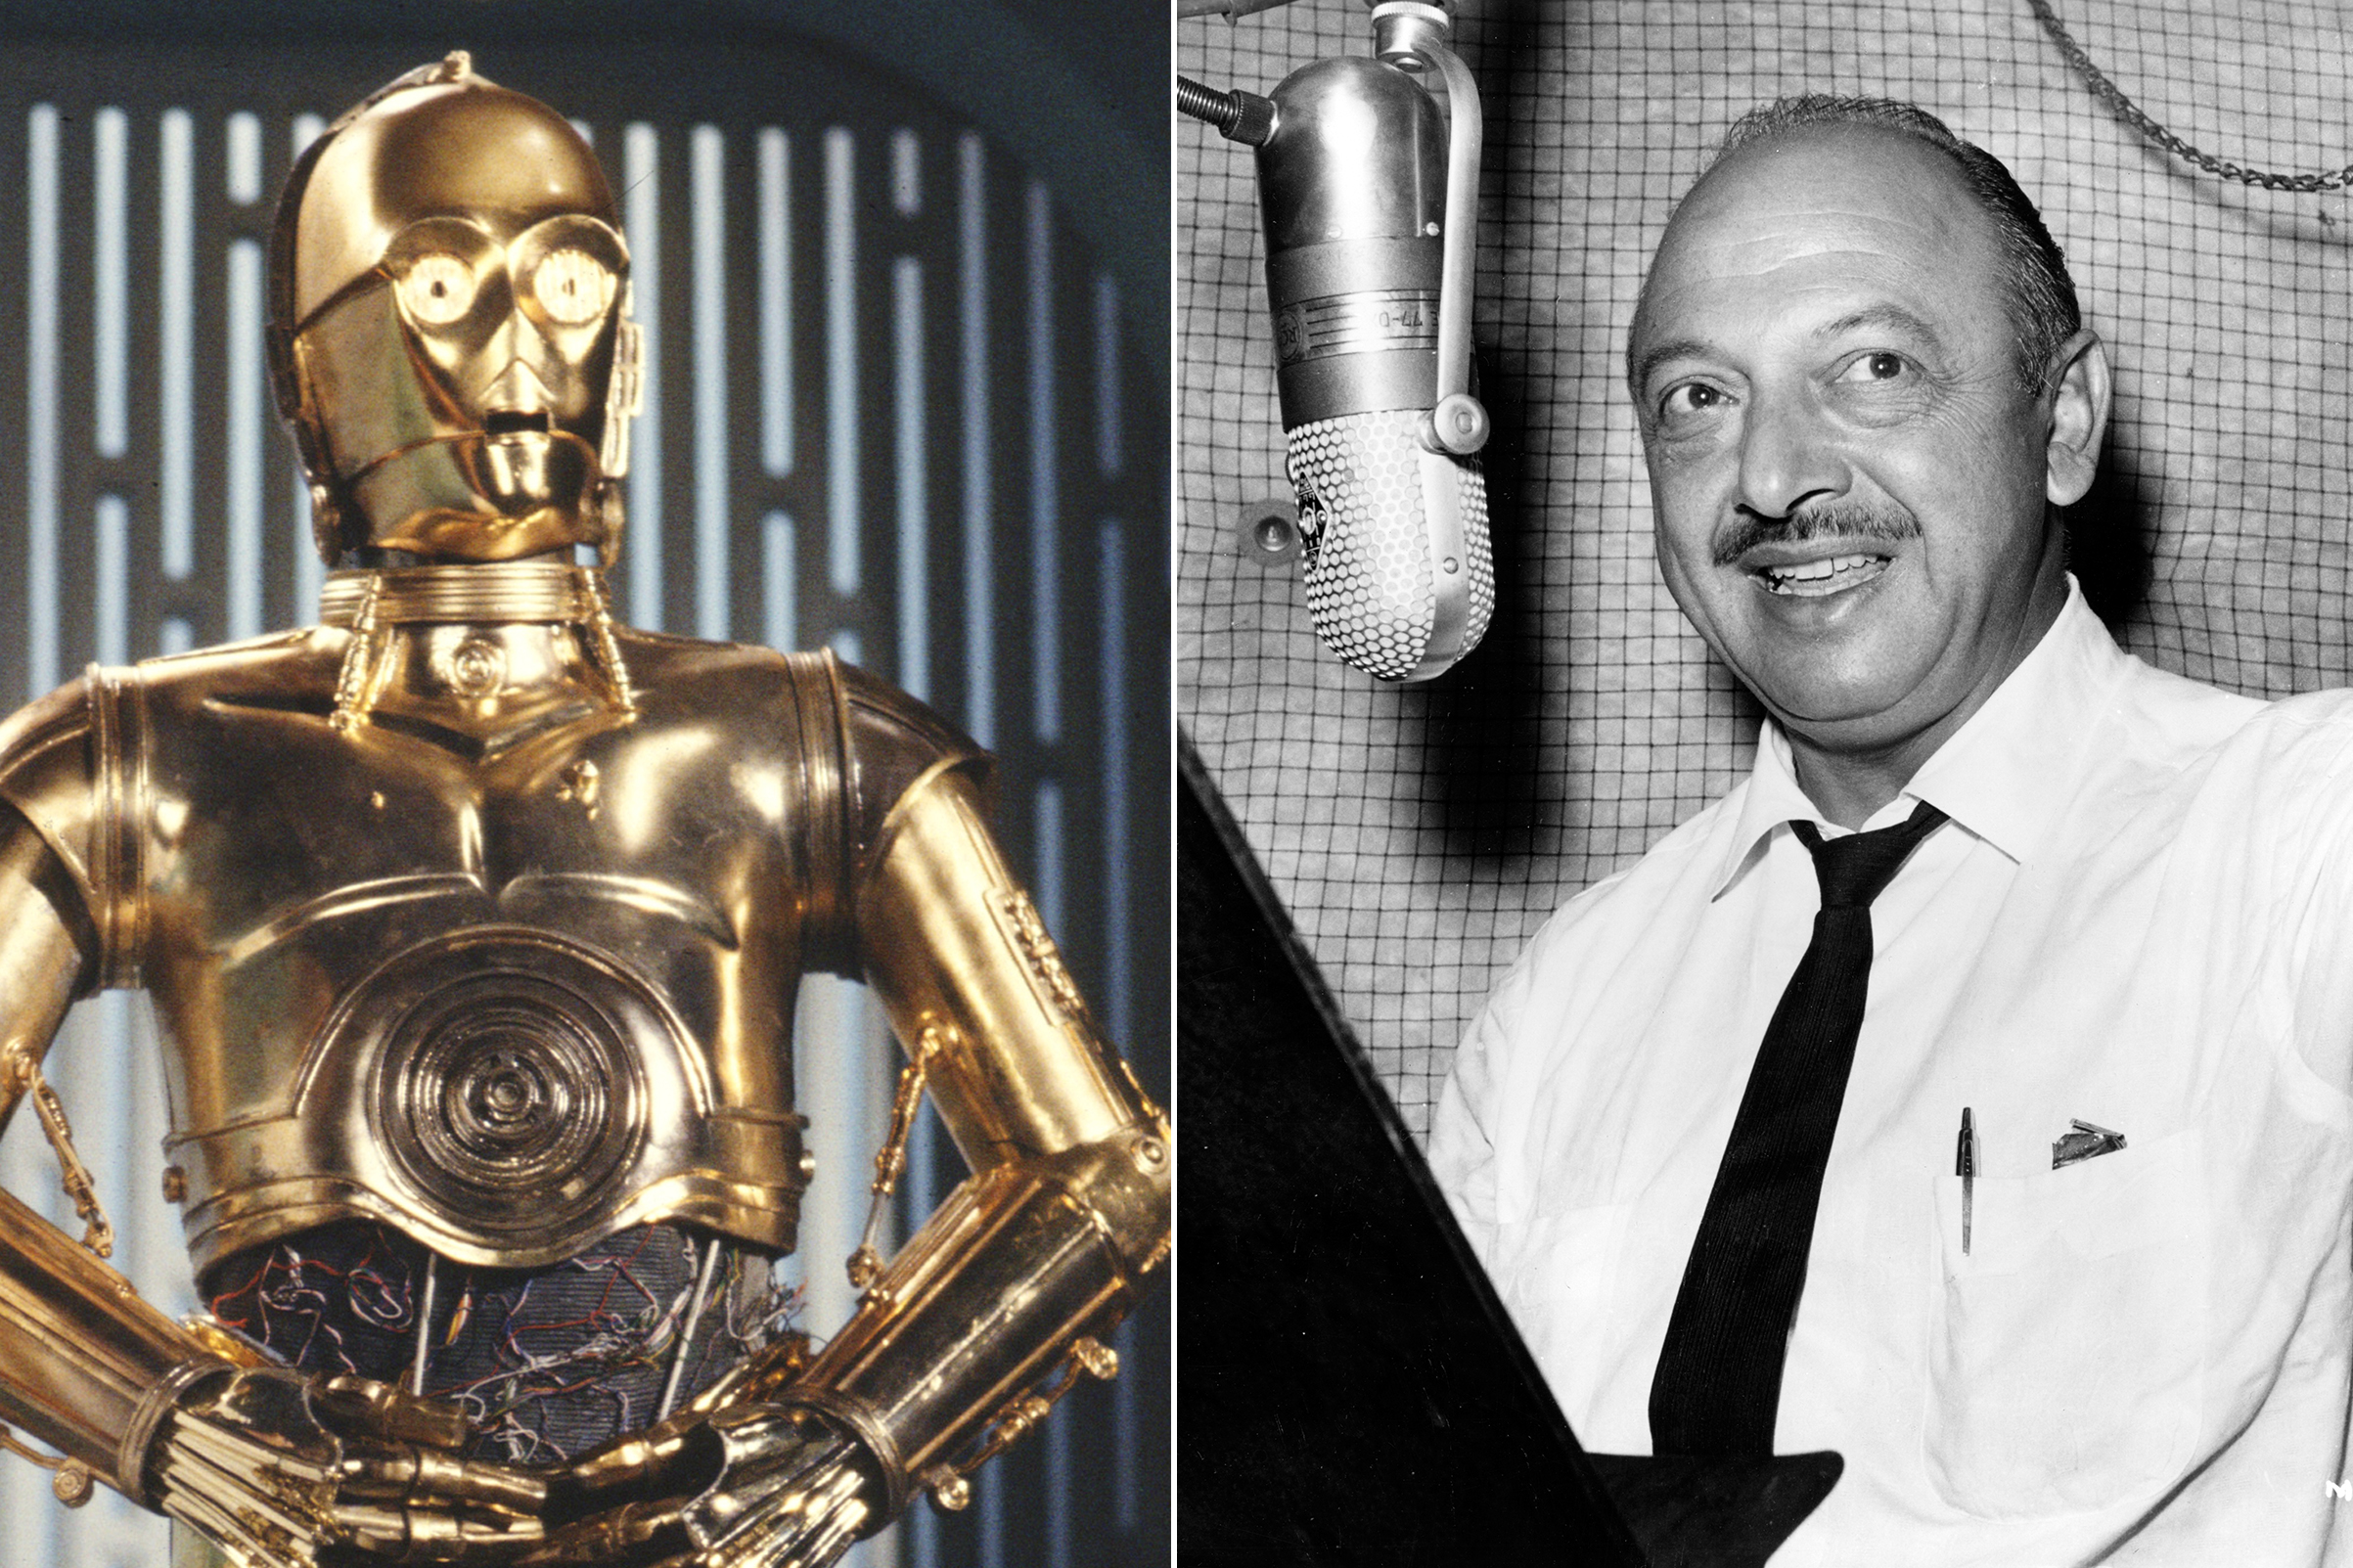 Mel Blanc was almost cast as C3PO in Star Wars